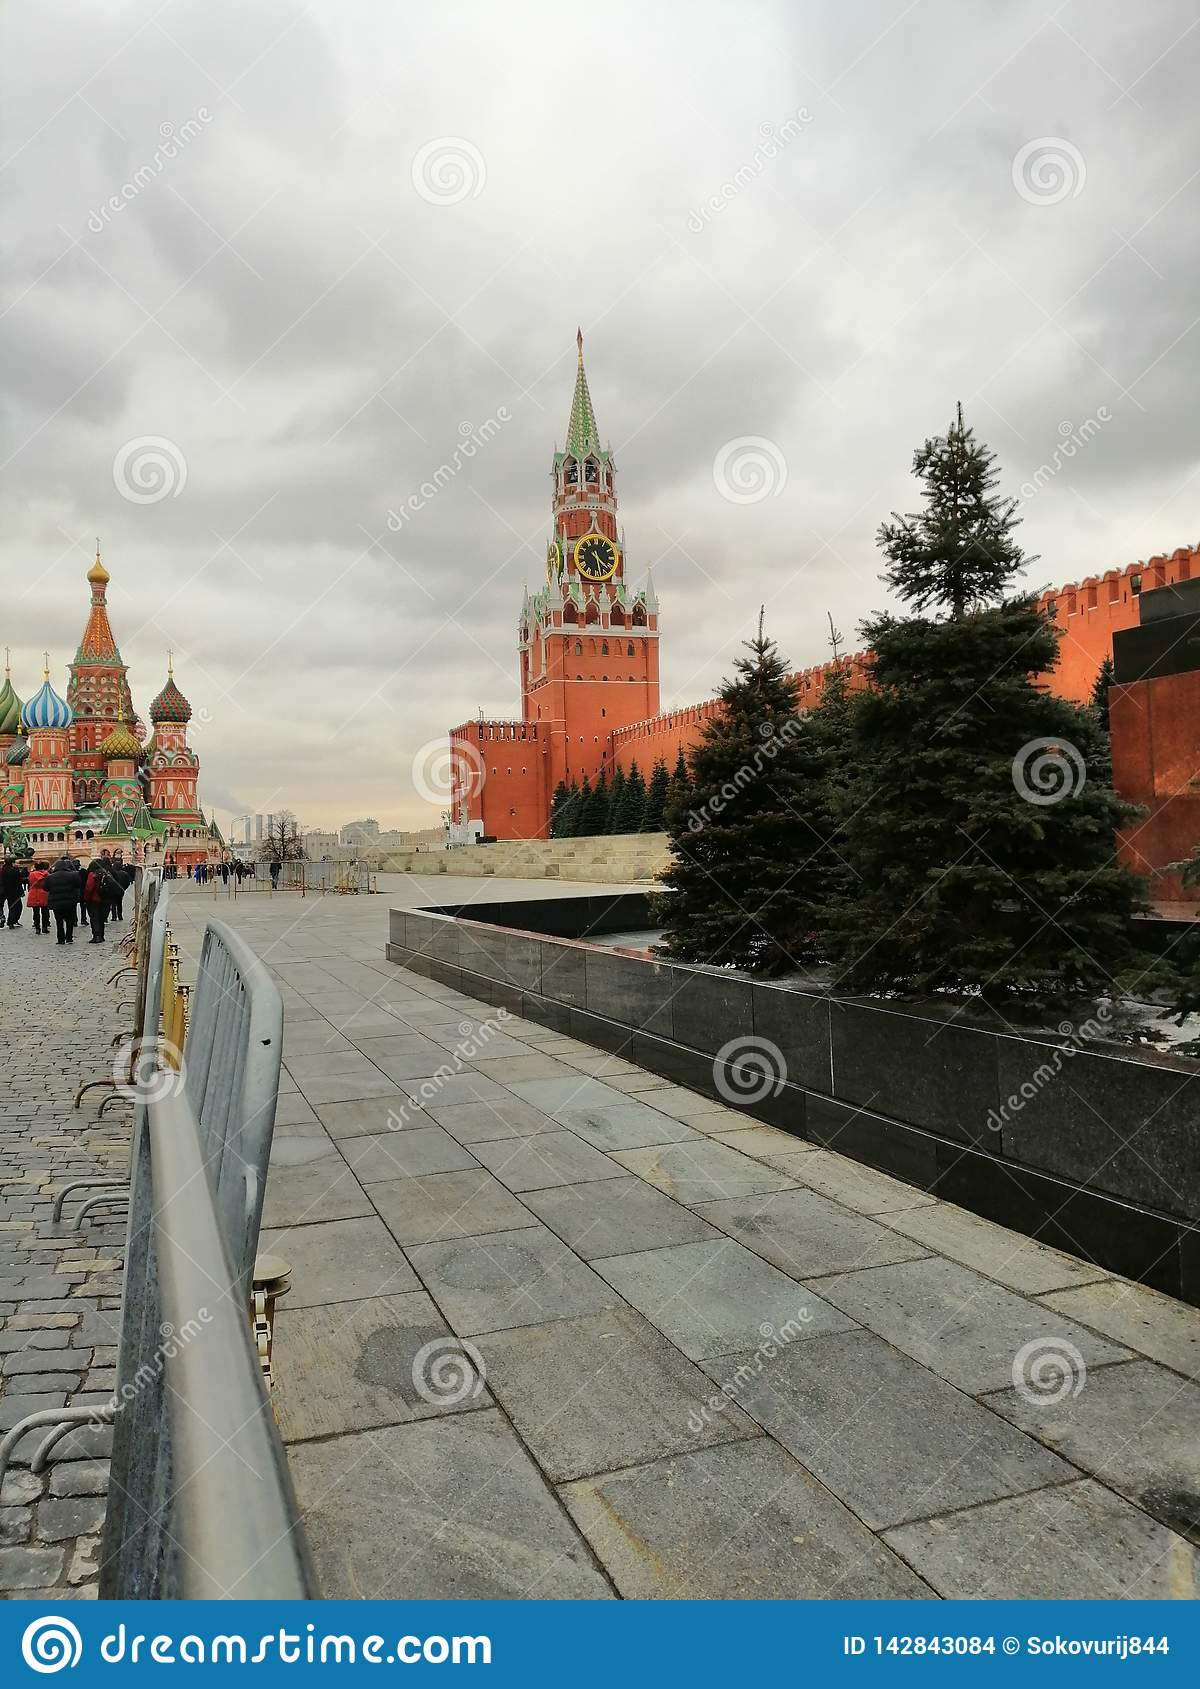 View of the Kremlin clock tower and the temple